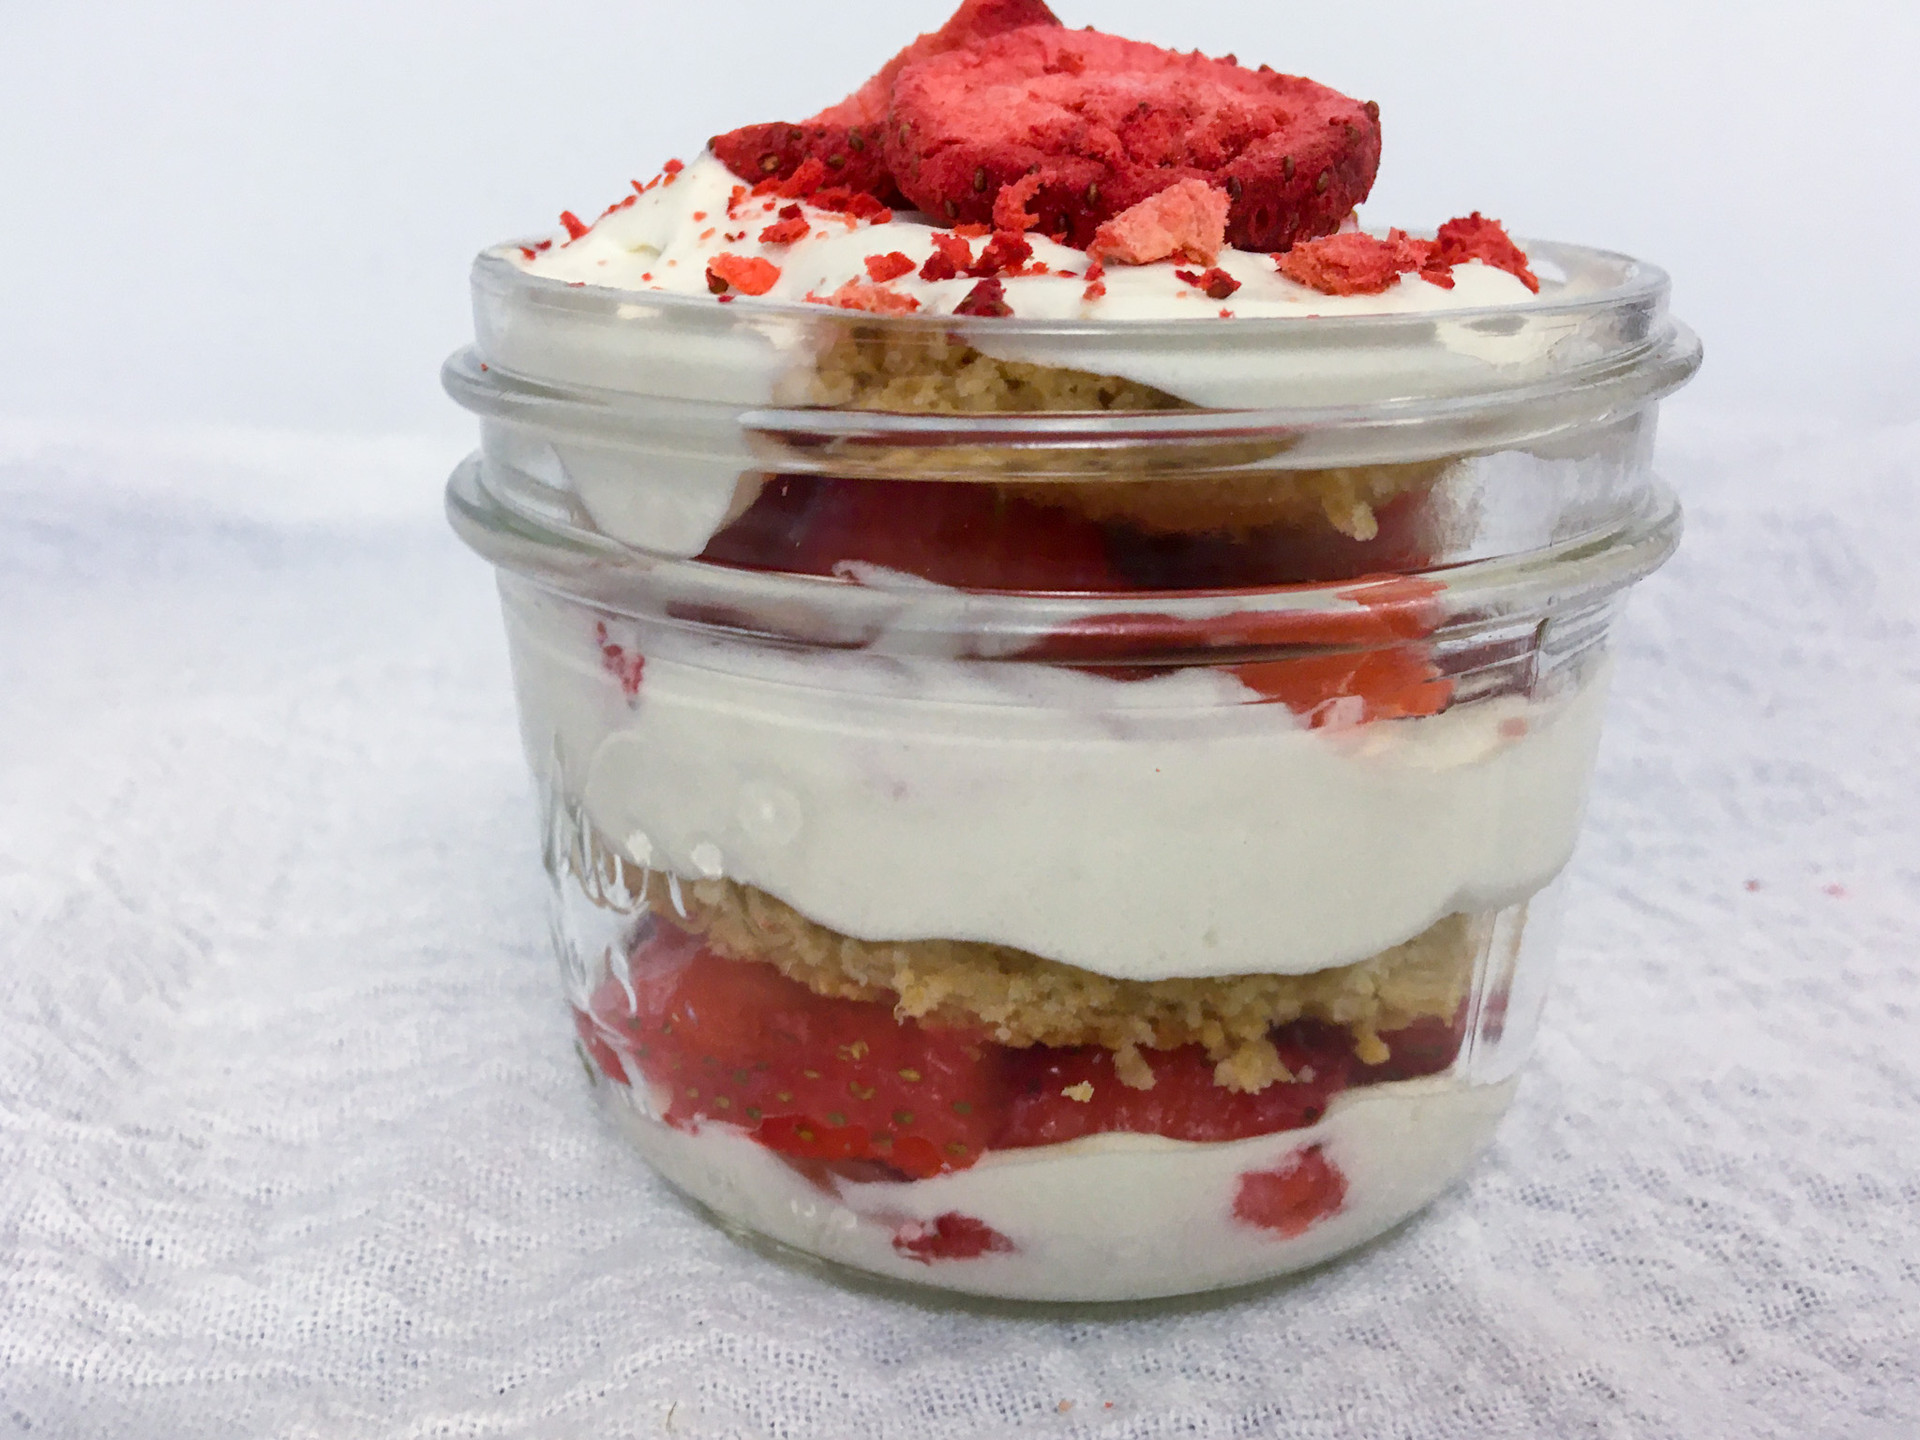 Strawberry, strawberries, strawberry shortcake, trifle, mason jar, Fourth of July, Independence Day, dessert, whipped cream, homemade whipped cream, freeze-dried strawberries, homeground wheat